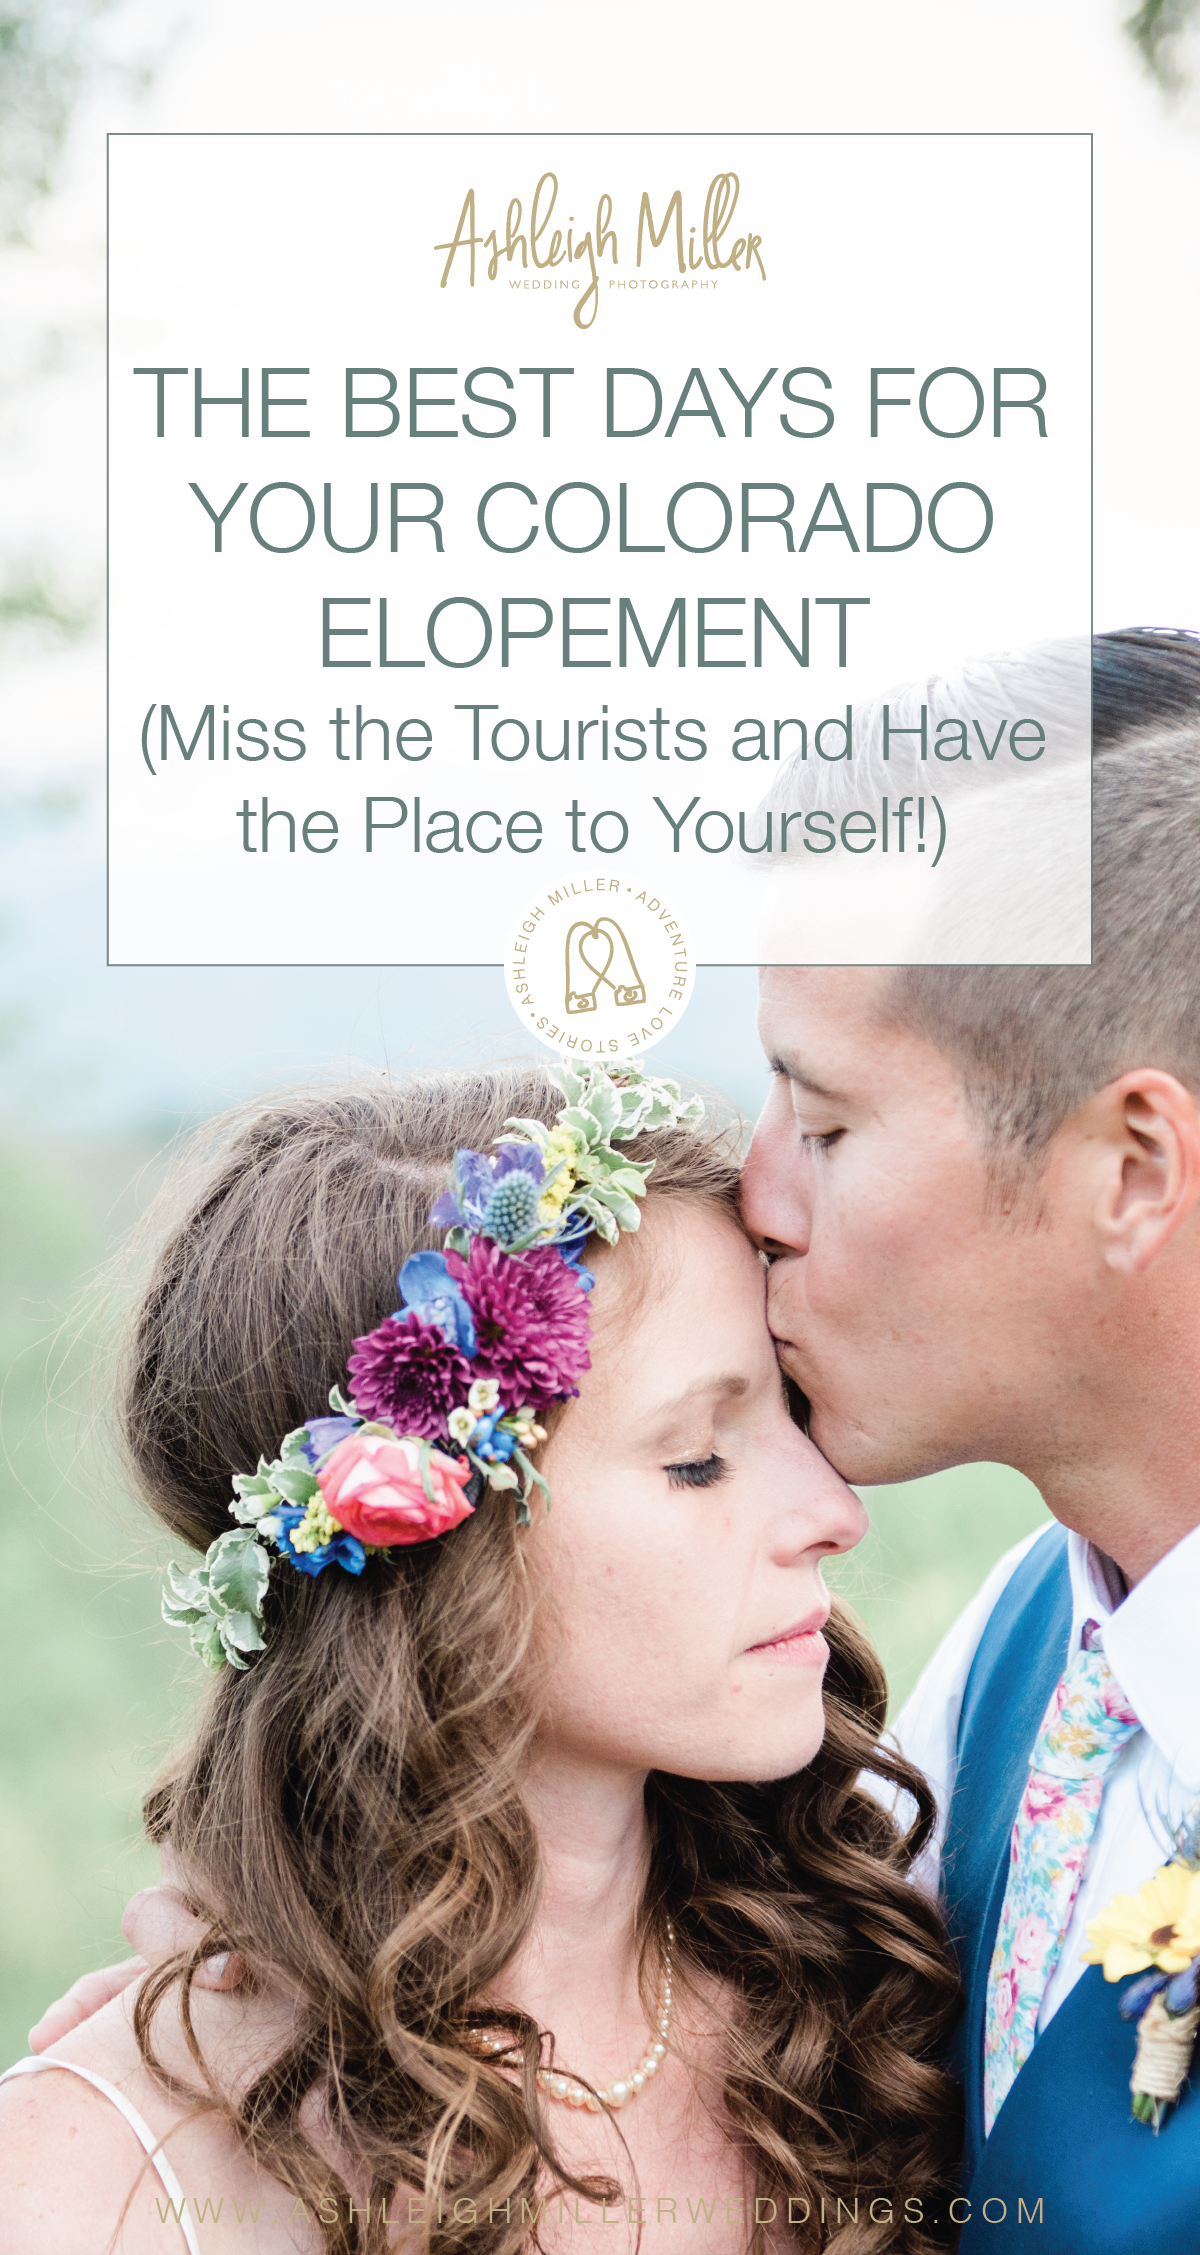 The Best Days for your Colorado Elopement   (Miss the Tourists and Have the Place to Yourself!)  So you've been dreaming of your Colorado Mountain Top elopement forever!  What you didn't dream of was your Mountain Top elopement with the whole bunch of tourists staring at you while your getting married. The whole point of you getting married in the mountains was to have an intimate ceremony without any other distractions!